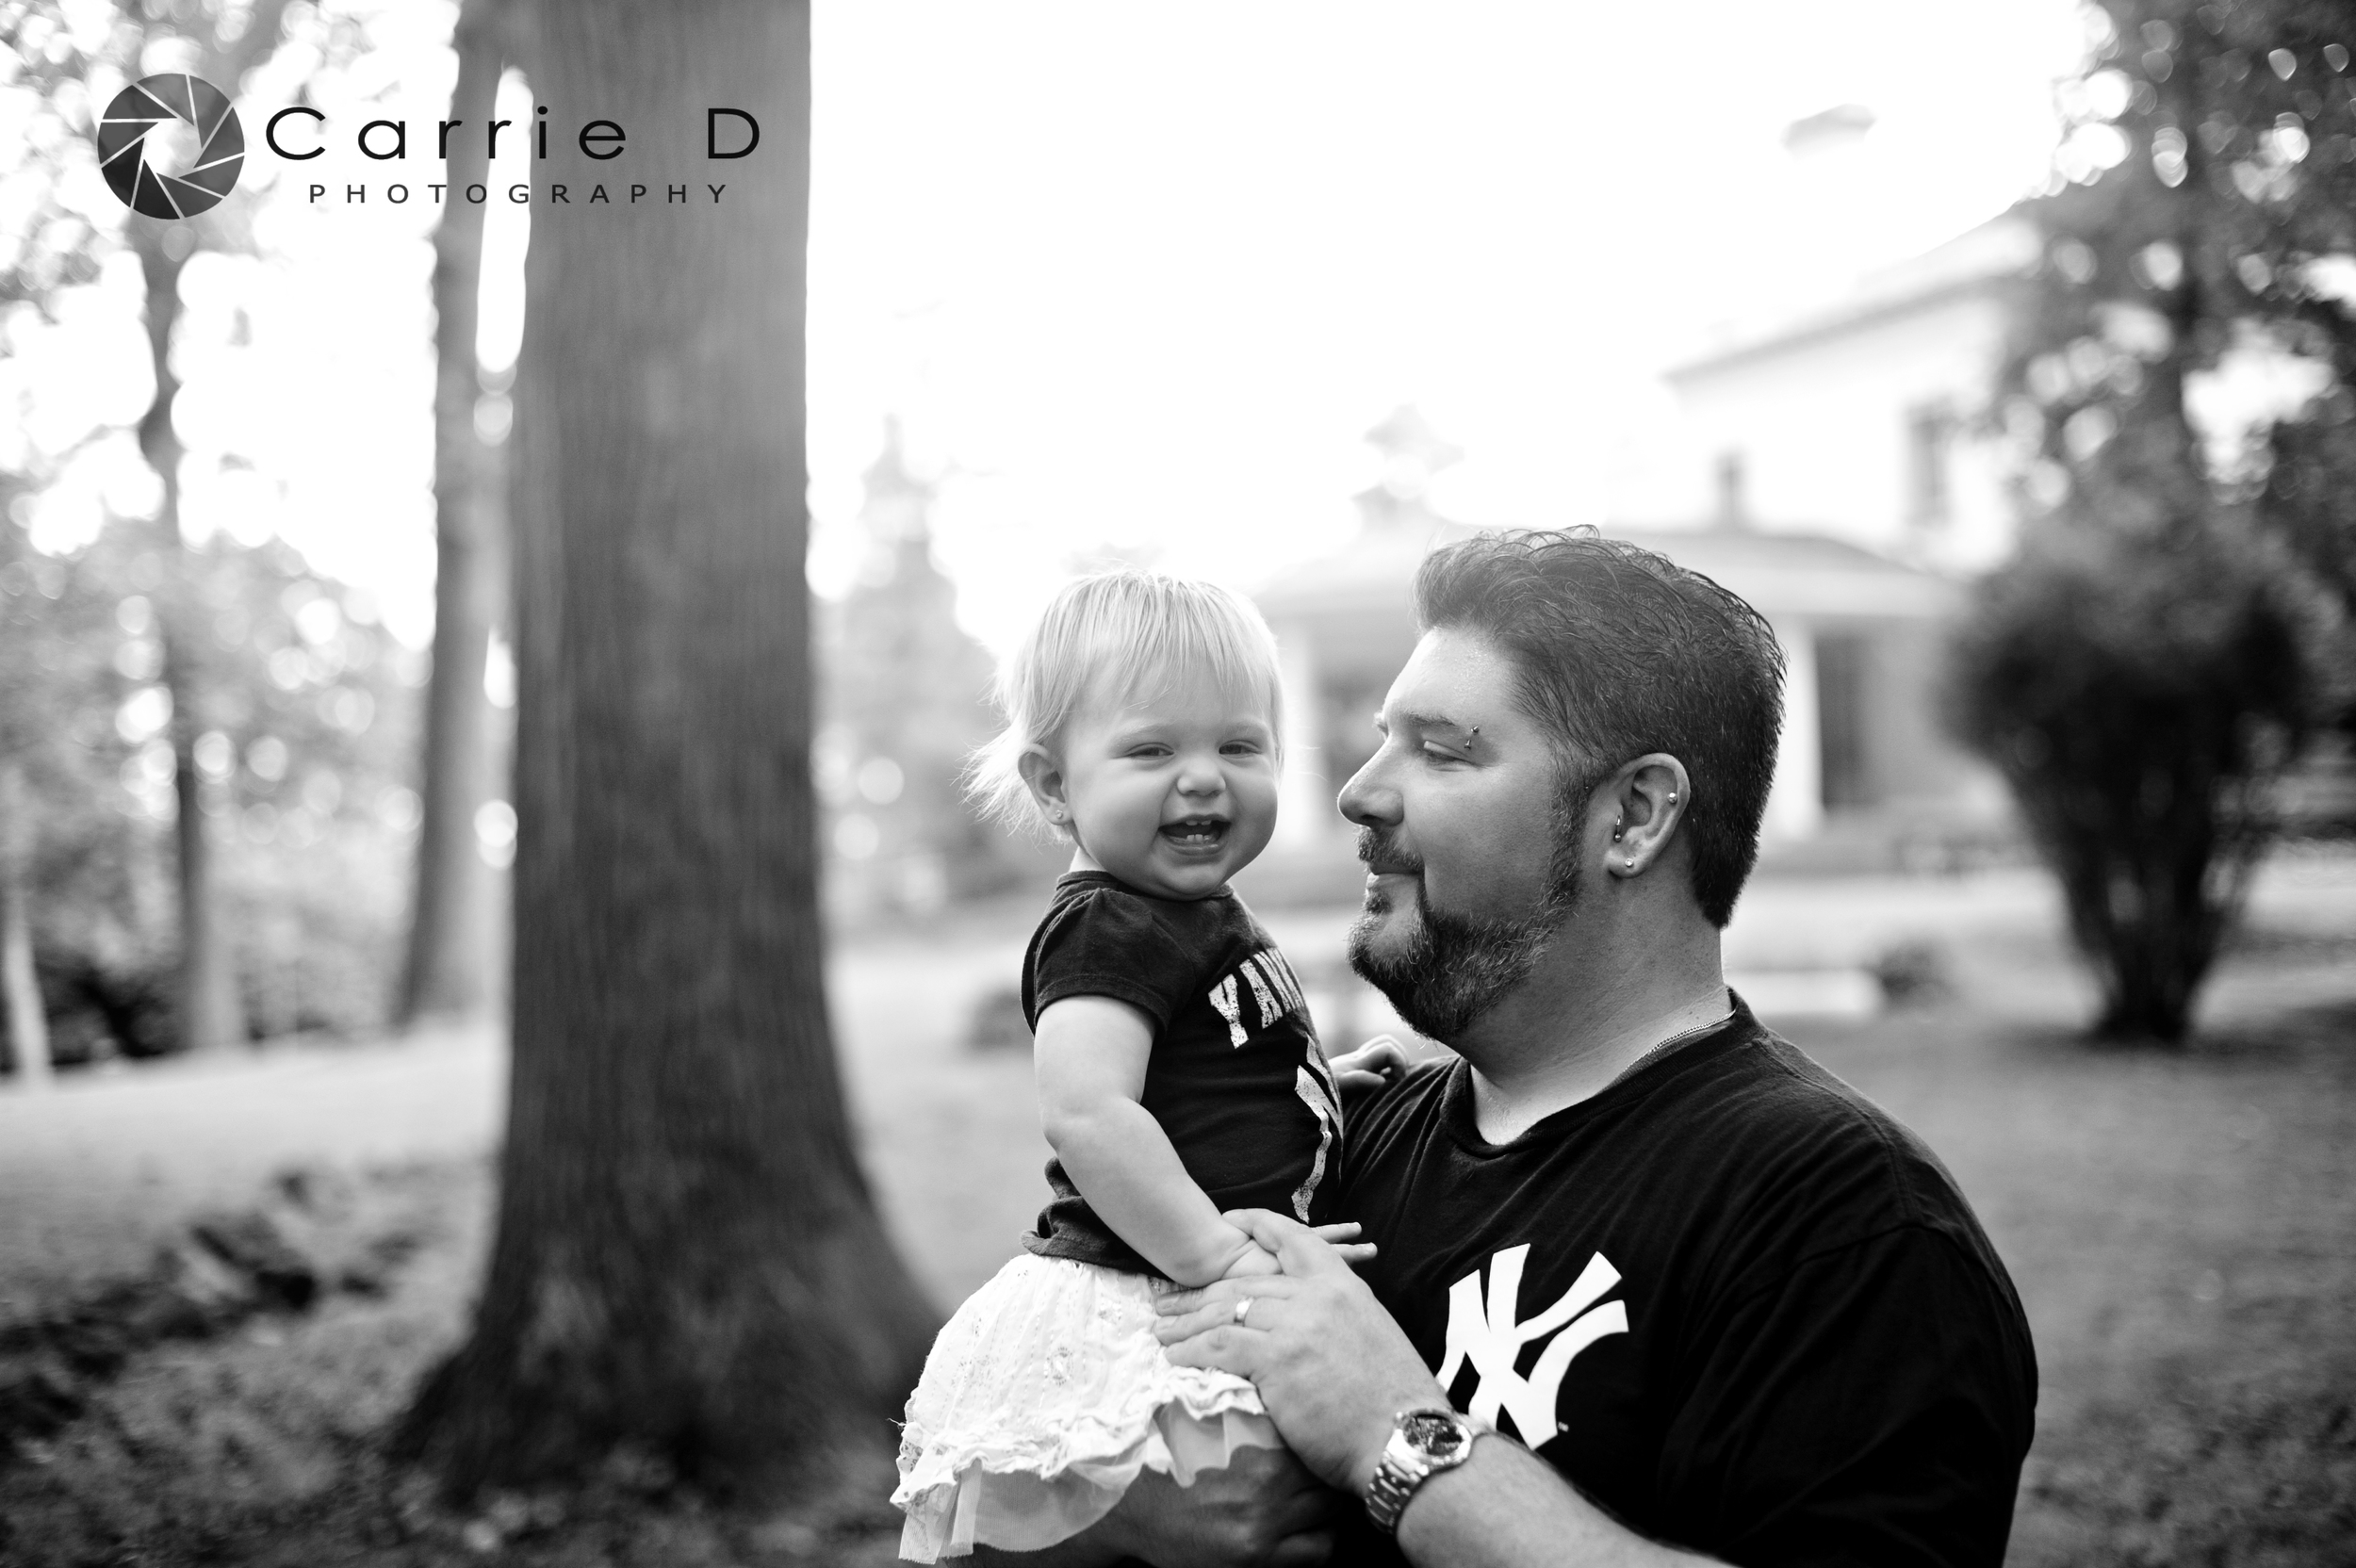 Harford County Photographer – Harford County Portrait Photographer – Harford County Family Photographer – Harford County Child Photographer – Harford County Sibling Photographer – Harford County Natural Light Photographer – Harford County Lifestyle Photographer – Harford County Natural Light Portrait Photographer - Maryland Photographer – Maryland Portrait Photographer – Maryland Family Photographer – Maryland Child Photographer – Maryland Sibling Photographer – Maryland Natural Light Photographer – Maryland Lifestyle Photographer – Maryland Natural Light Portrait Photographer - Abby_DSC_0882B